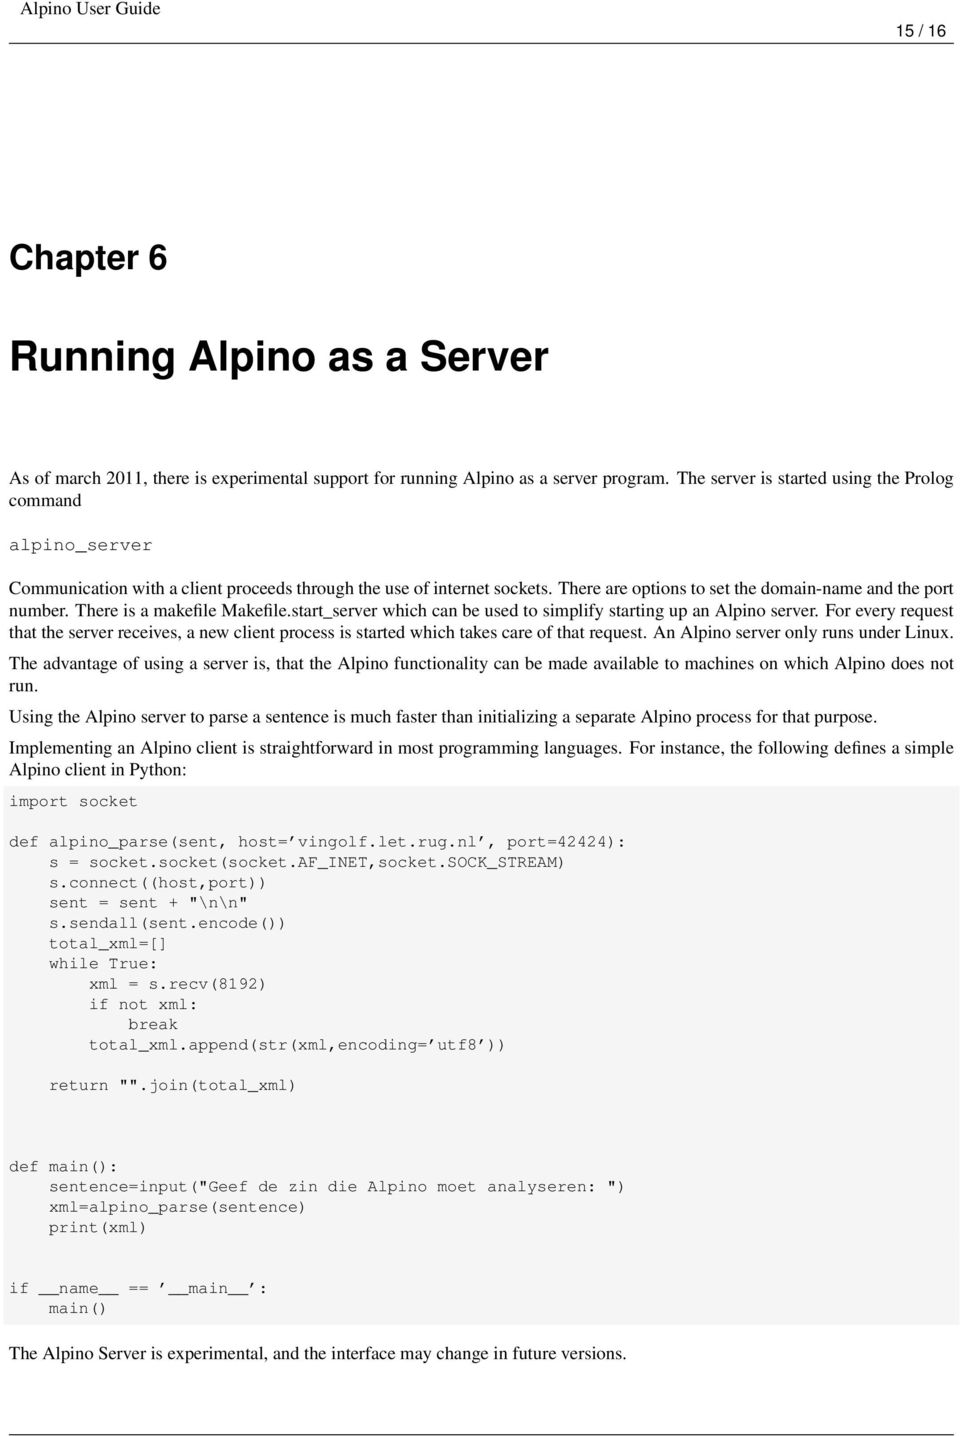 There is a makefile Makefile.start_server which can be used to simplify starting up an Alpino server.